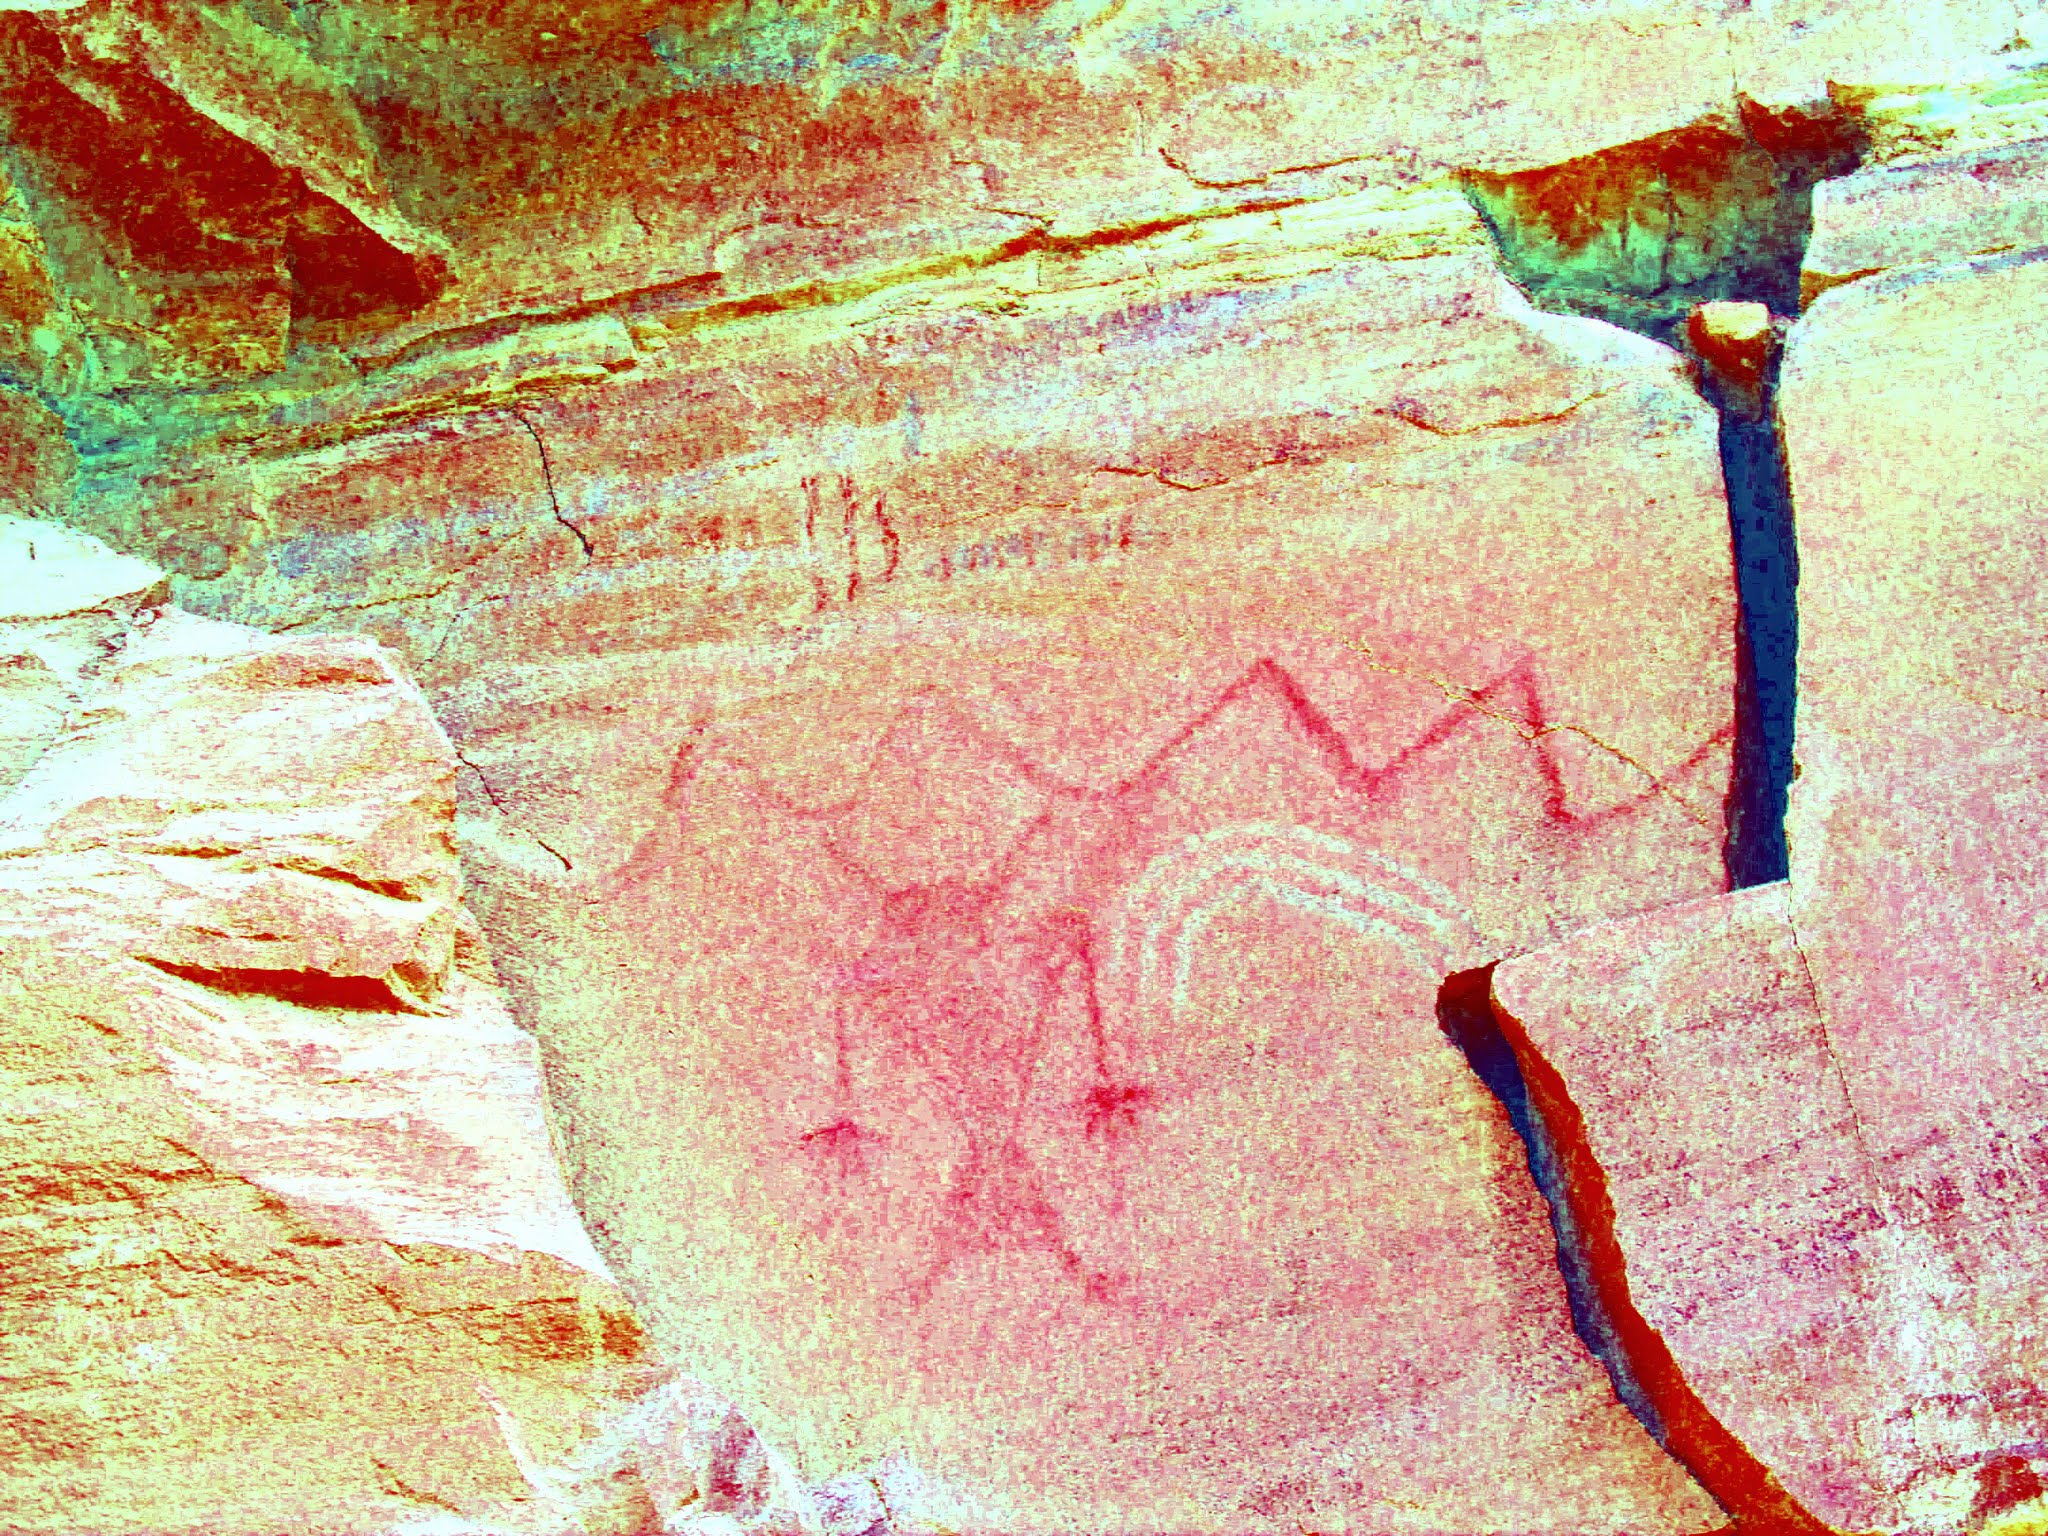 Photo: DStretch enhanced pictos showing horned Fremont figure